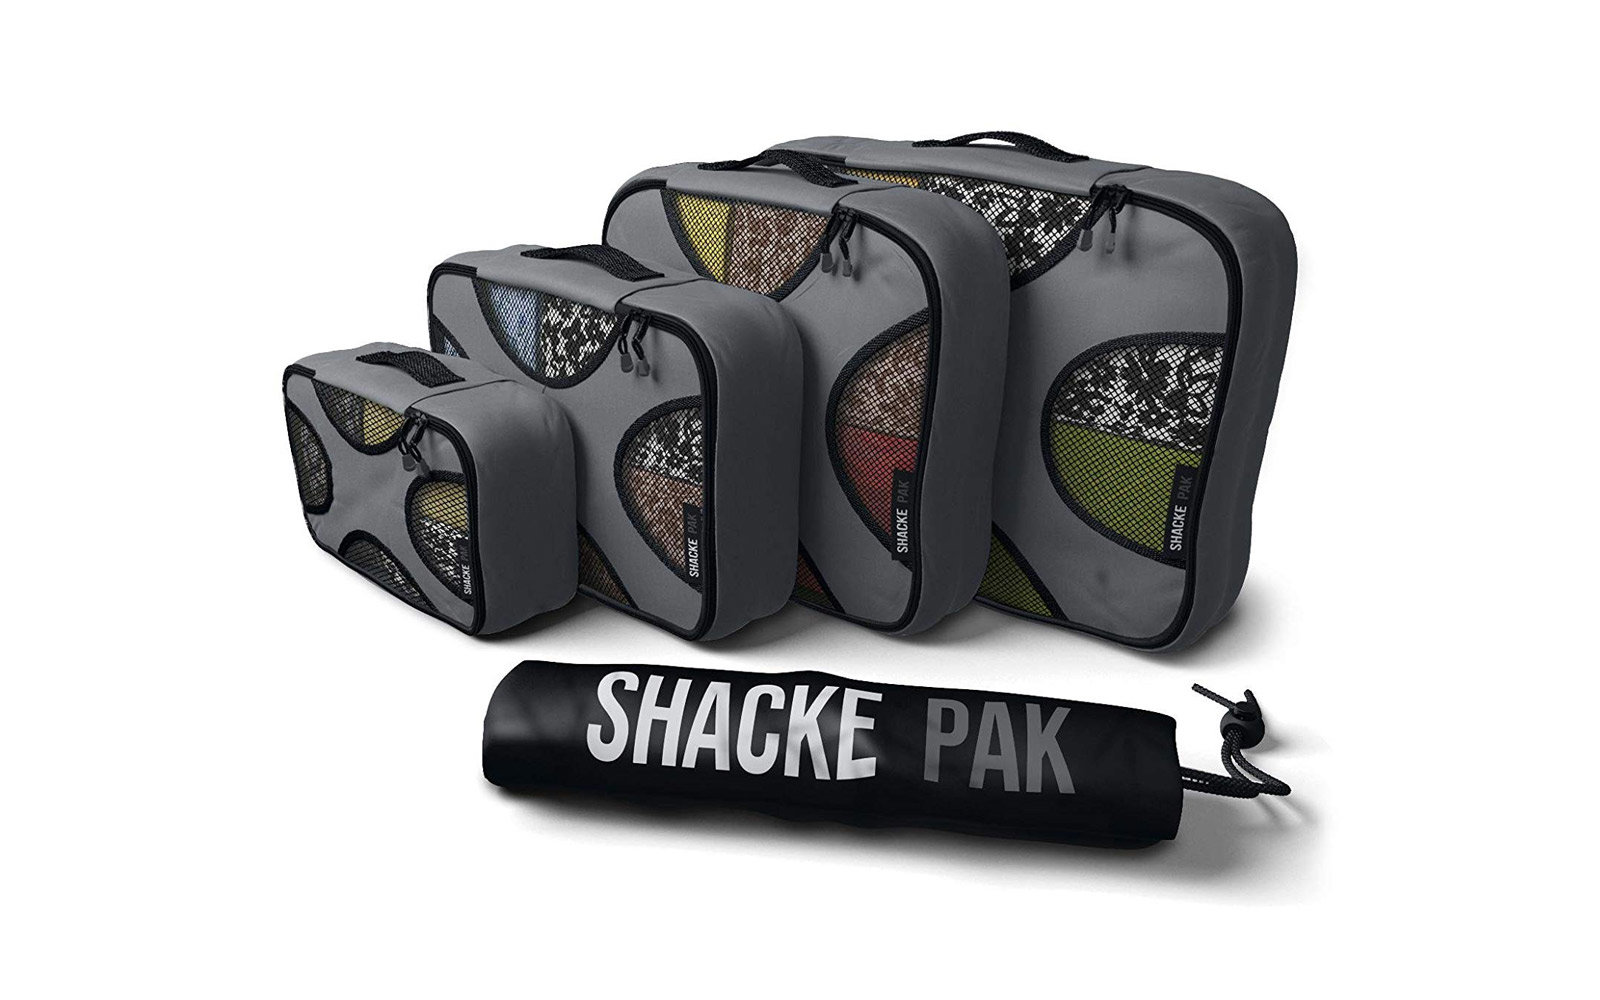 Shacke Pak Packing Cube Set